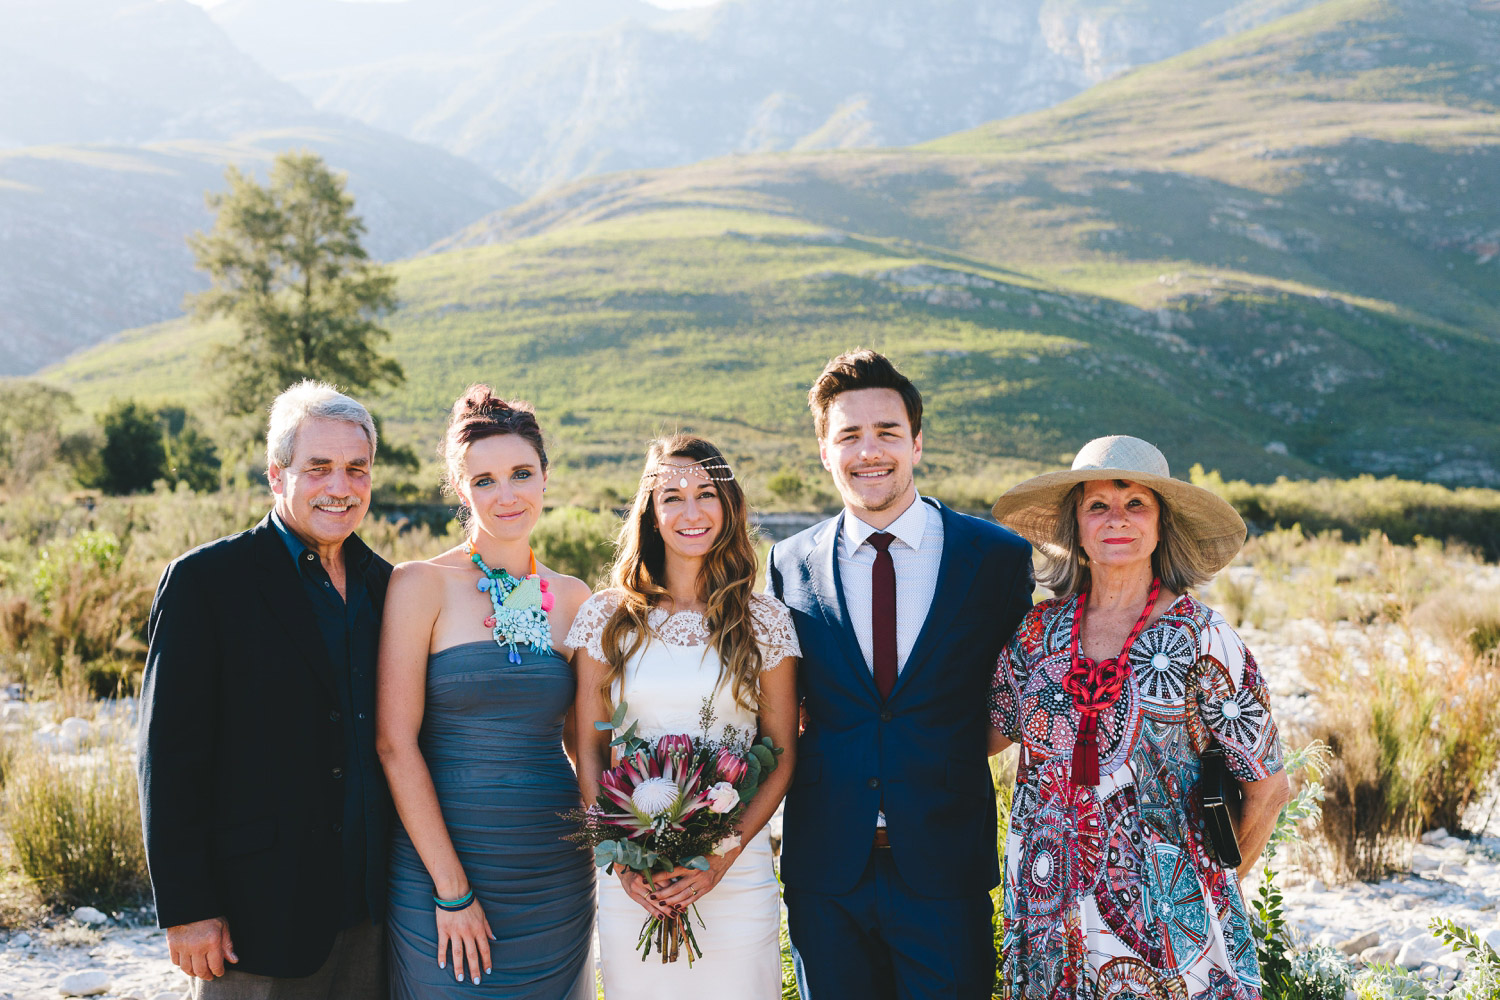 greyton-wedding-western-cape-photographer-river-bed-proteas-south-african113.jpg